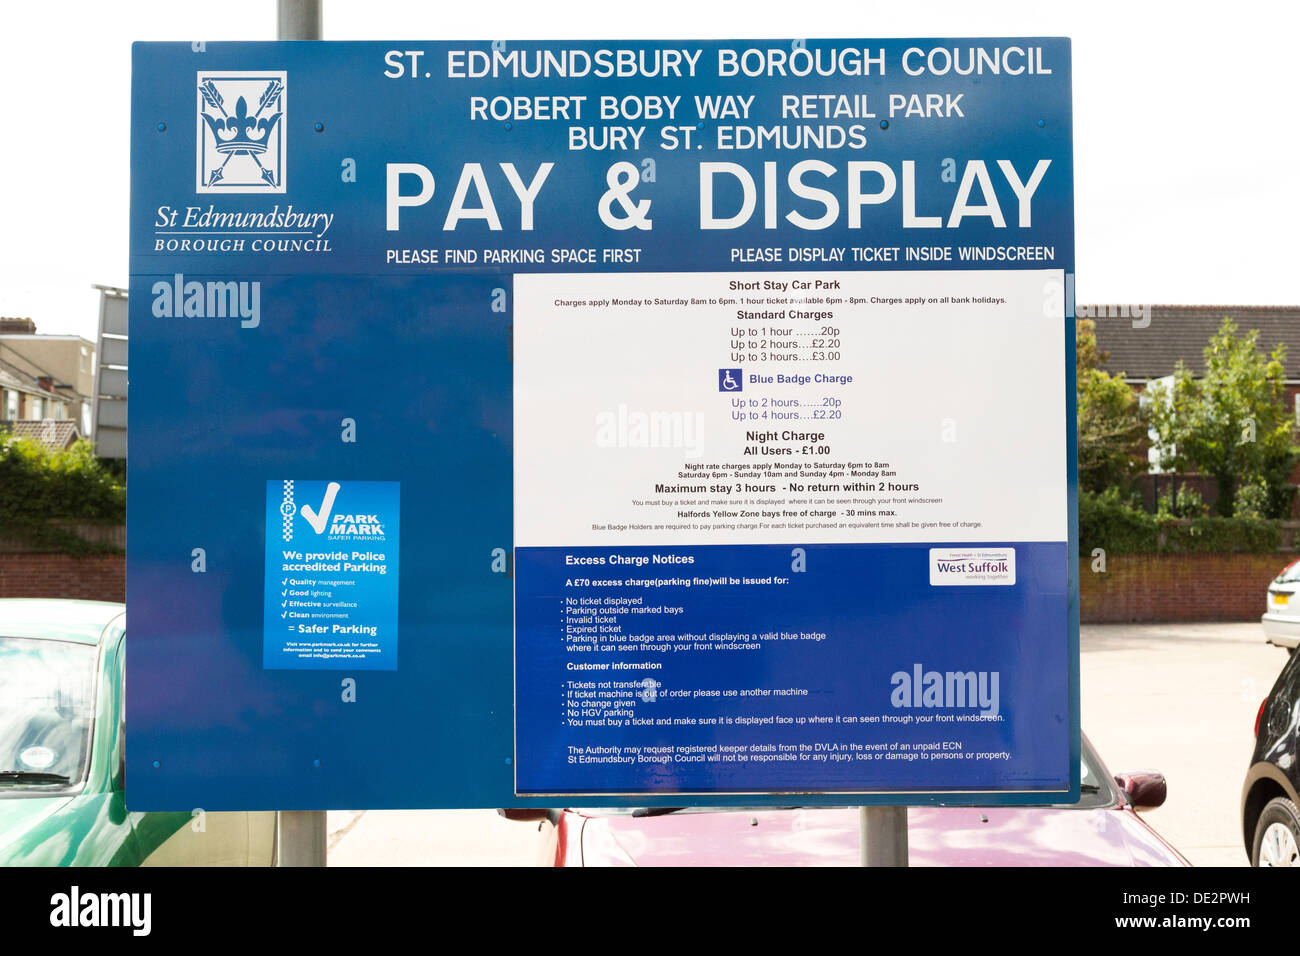 Pay & Display car park sign in the UK - Stock Image